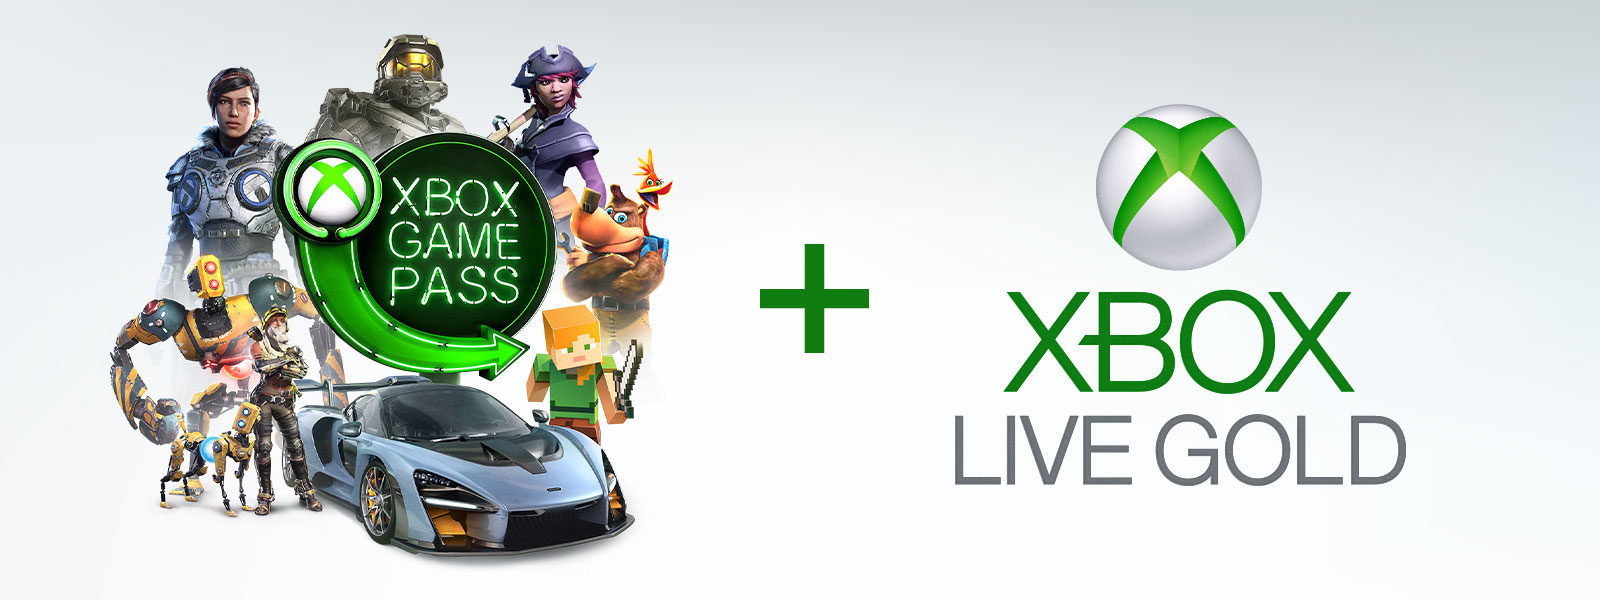 Sinal néon do Xbox Live Gold e do Xbox Game Pass rodeado por personagens do Sea of Thieves, do ReCORE, do Forza Horizon 4, do HALO, do Banjo Kazooie e um blockhead do Minecraft.